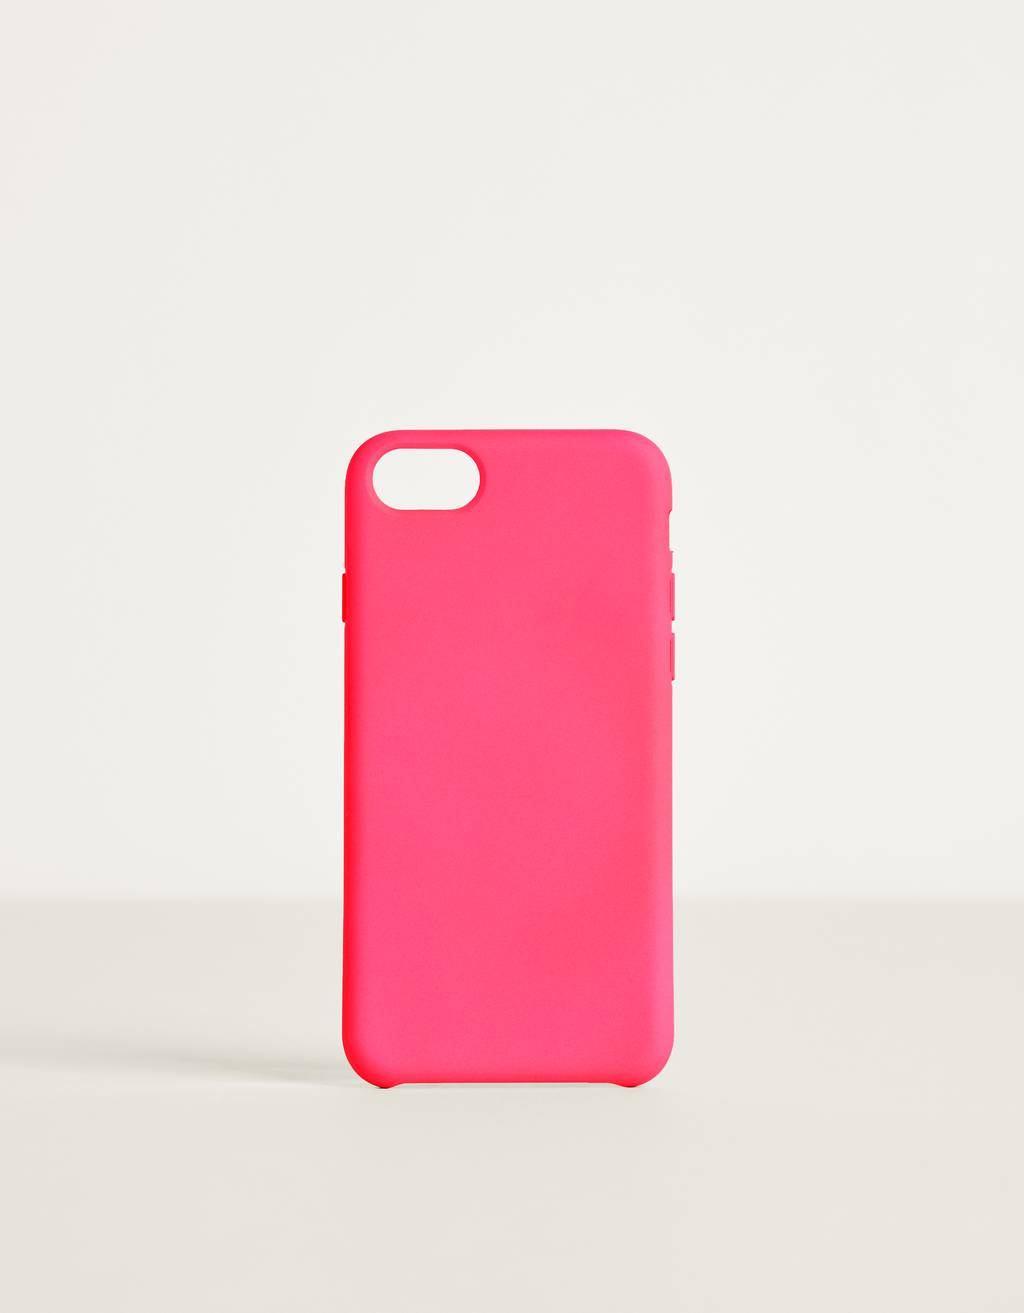 Carcassa monocolor iPhone 6/7/8